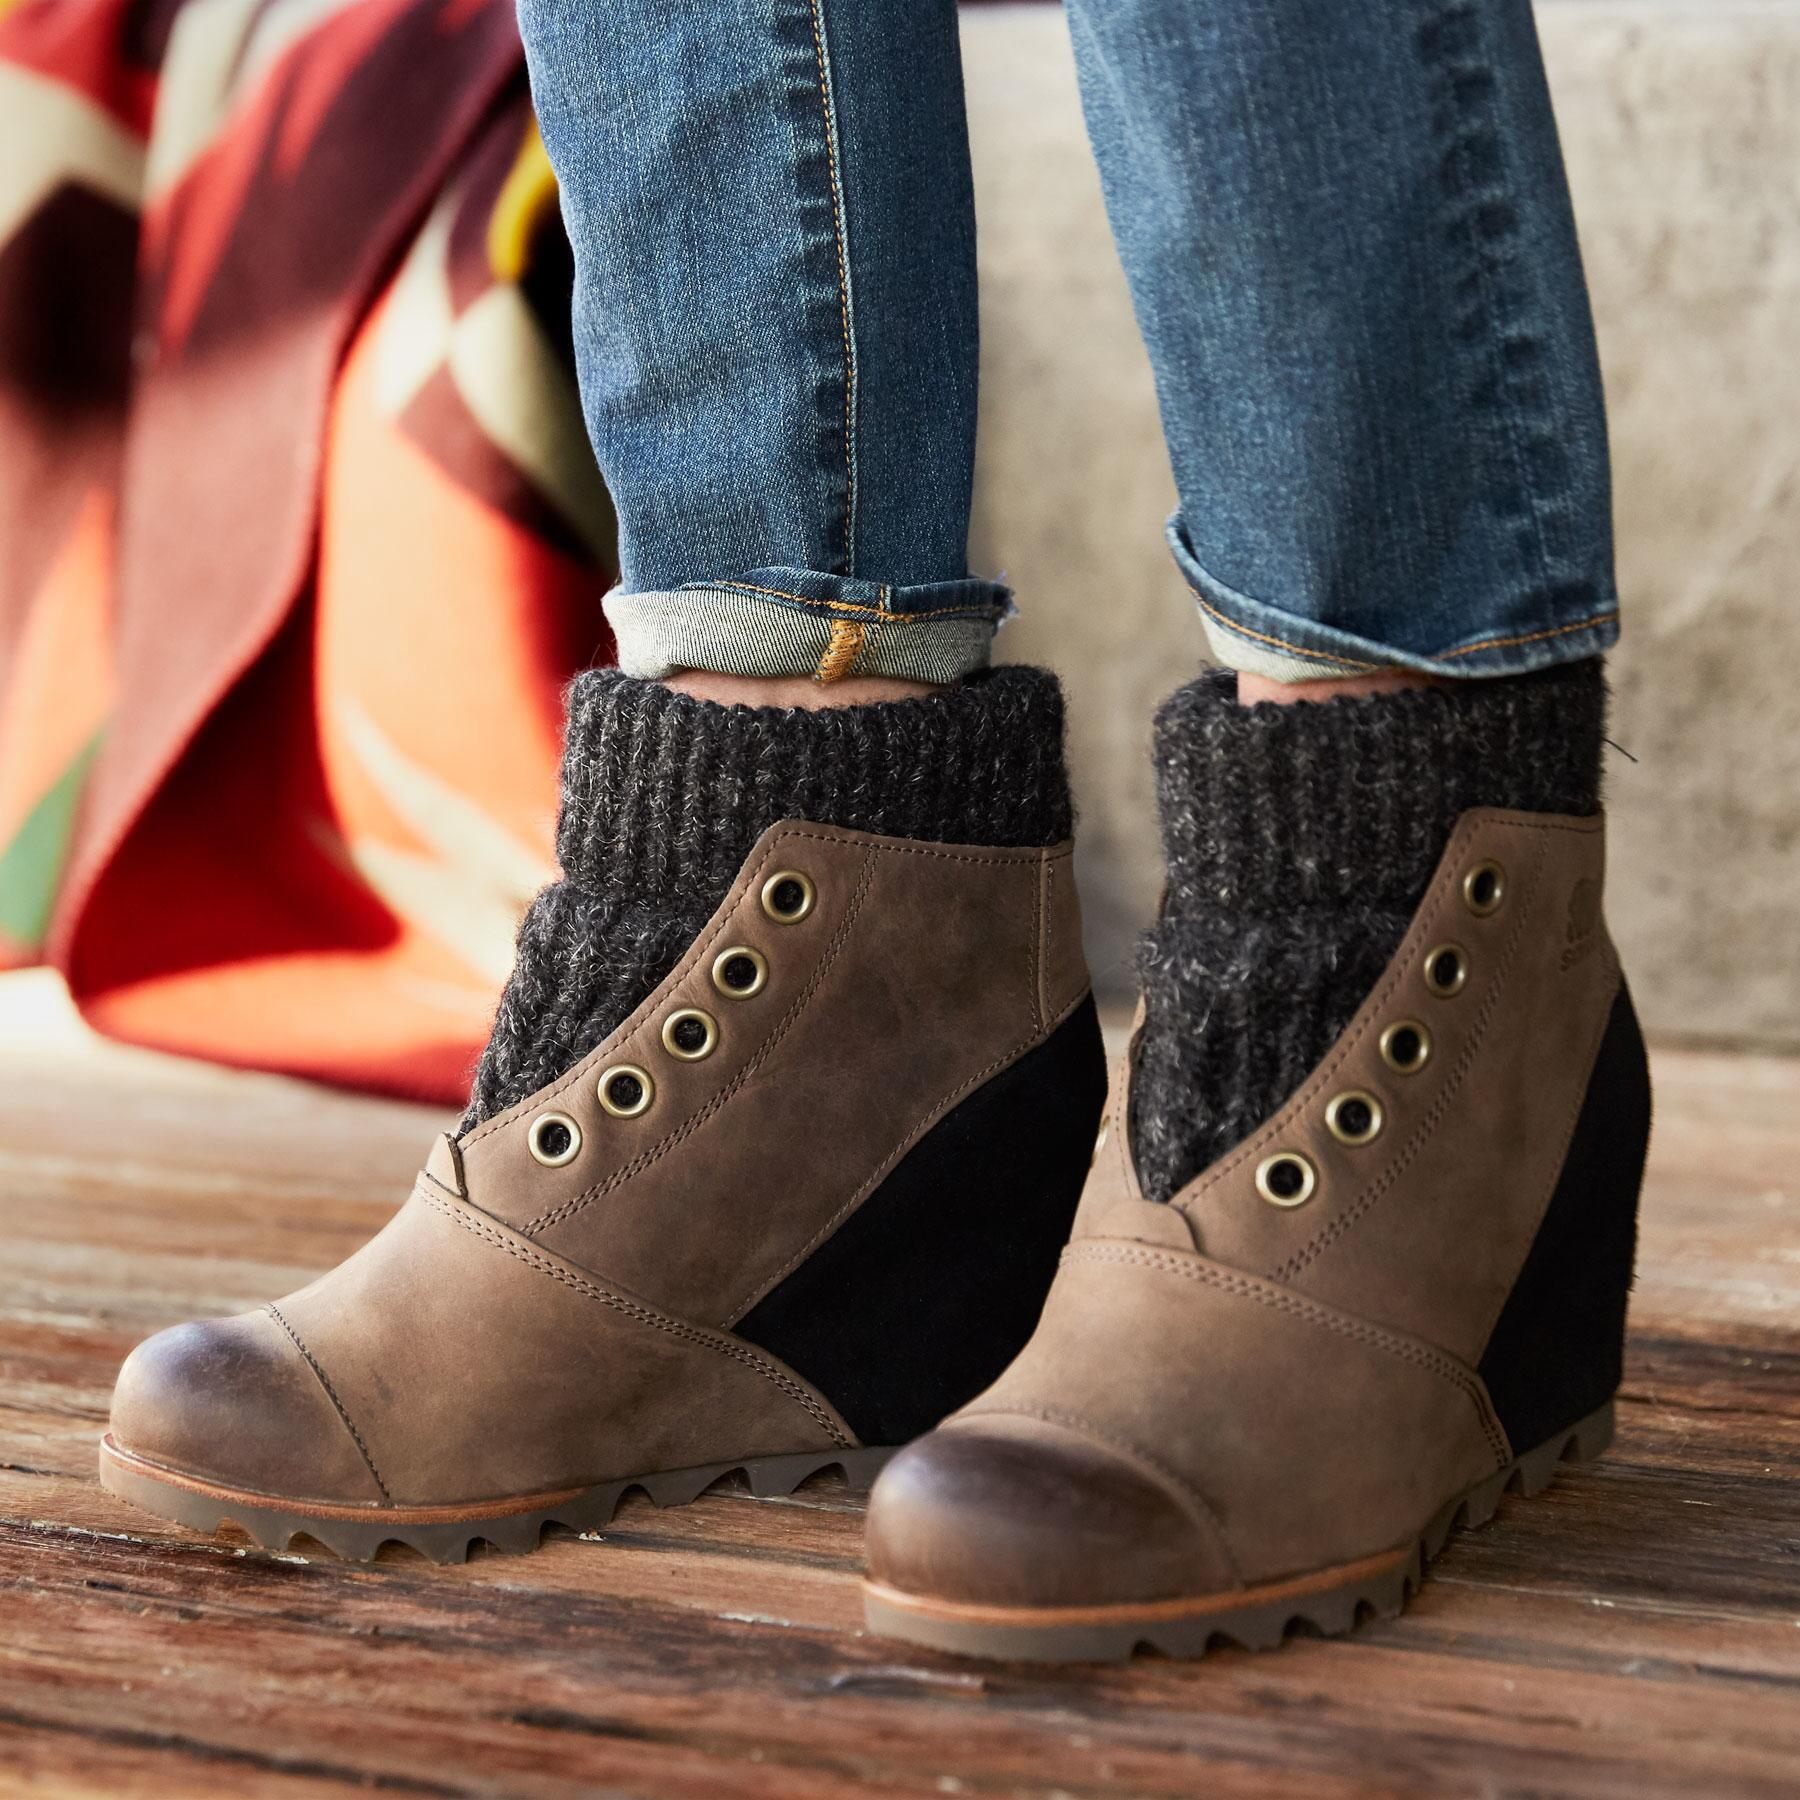 ba5039c8178 JOANIE SWEATER BOOTS BY SOREL  View 1